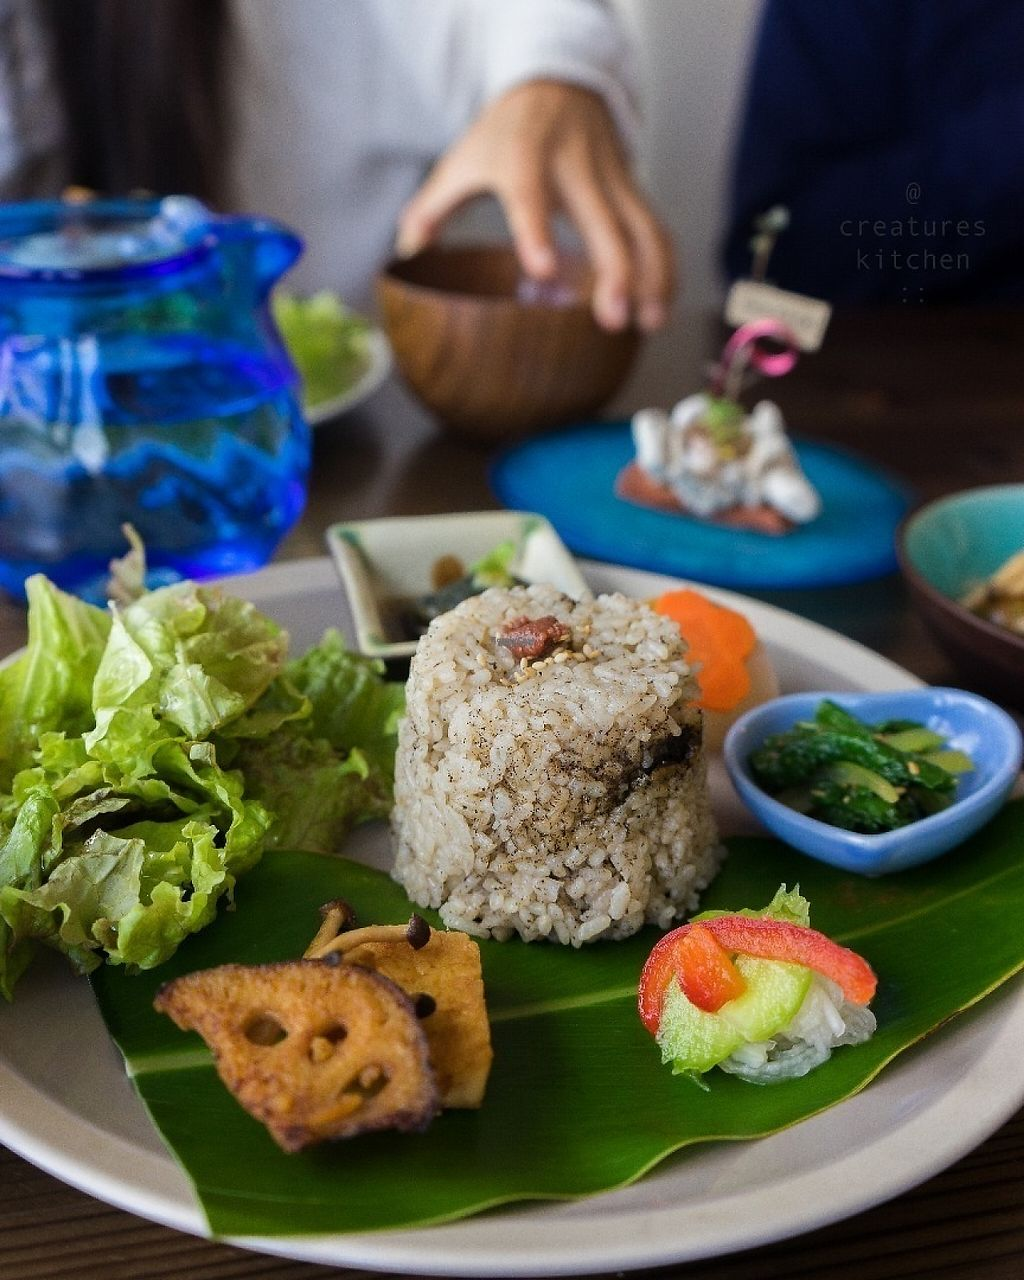 """Photo of Imacoco  by <a href=""""/members/profile/EmmaCebuliak"""">EmmaCebuliak</a> <br/>Lunch set featuring brown rice and pickled plum, lotus root, greens, eggplant, komatsuna, miso soup, and tofu.  <br/> January 18, 2017  - <a href='/contact/abuse/image/85000/213033'>Report</a>"""